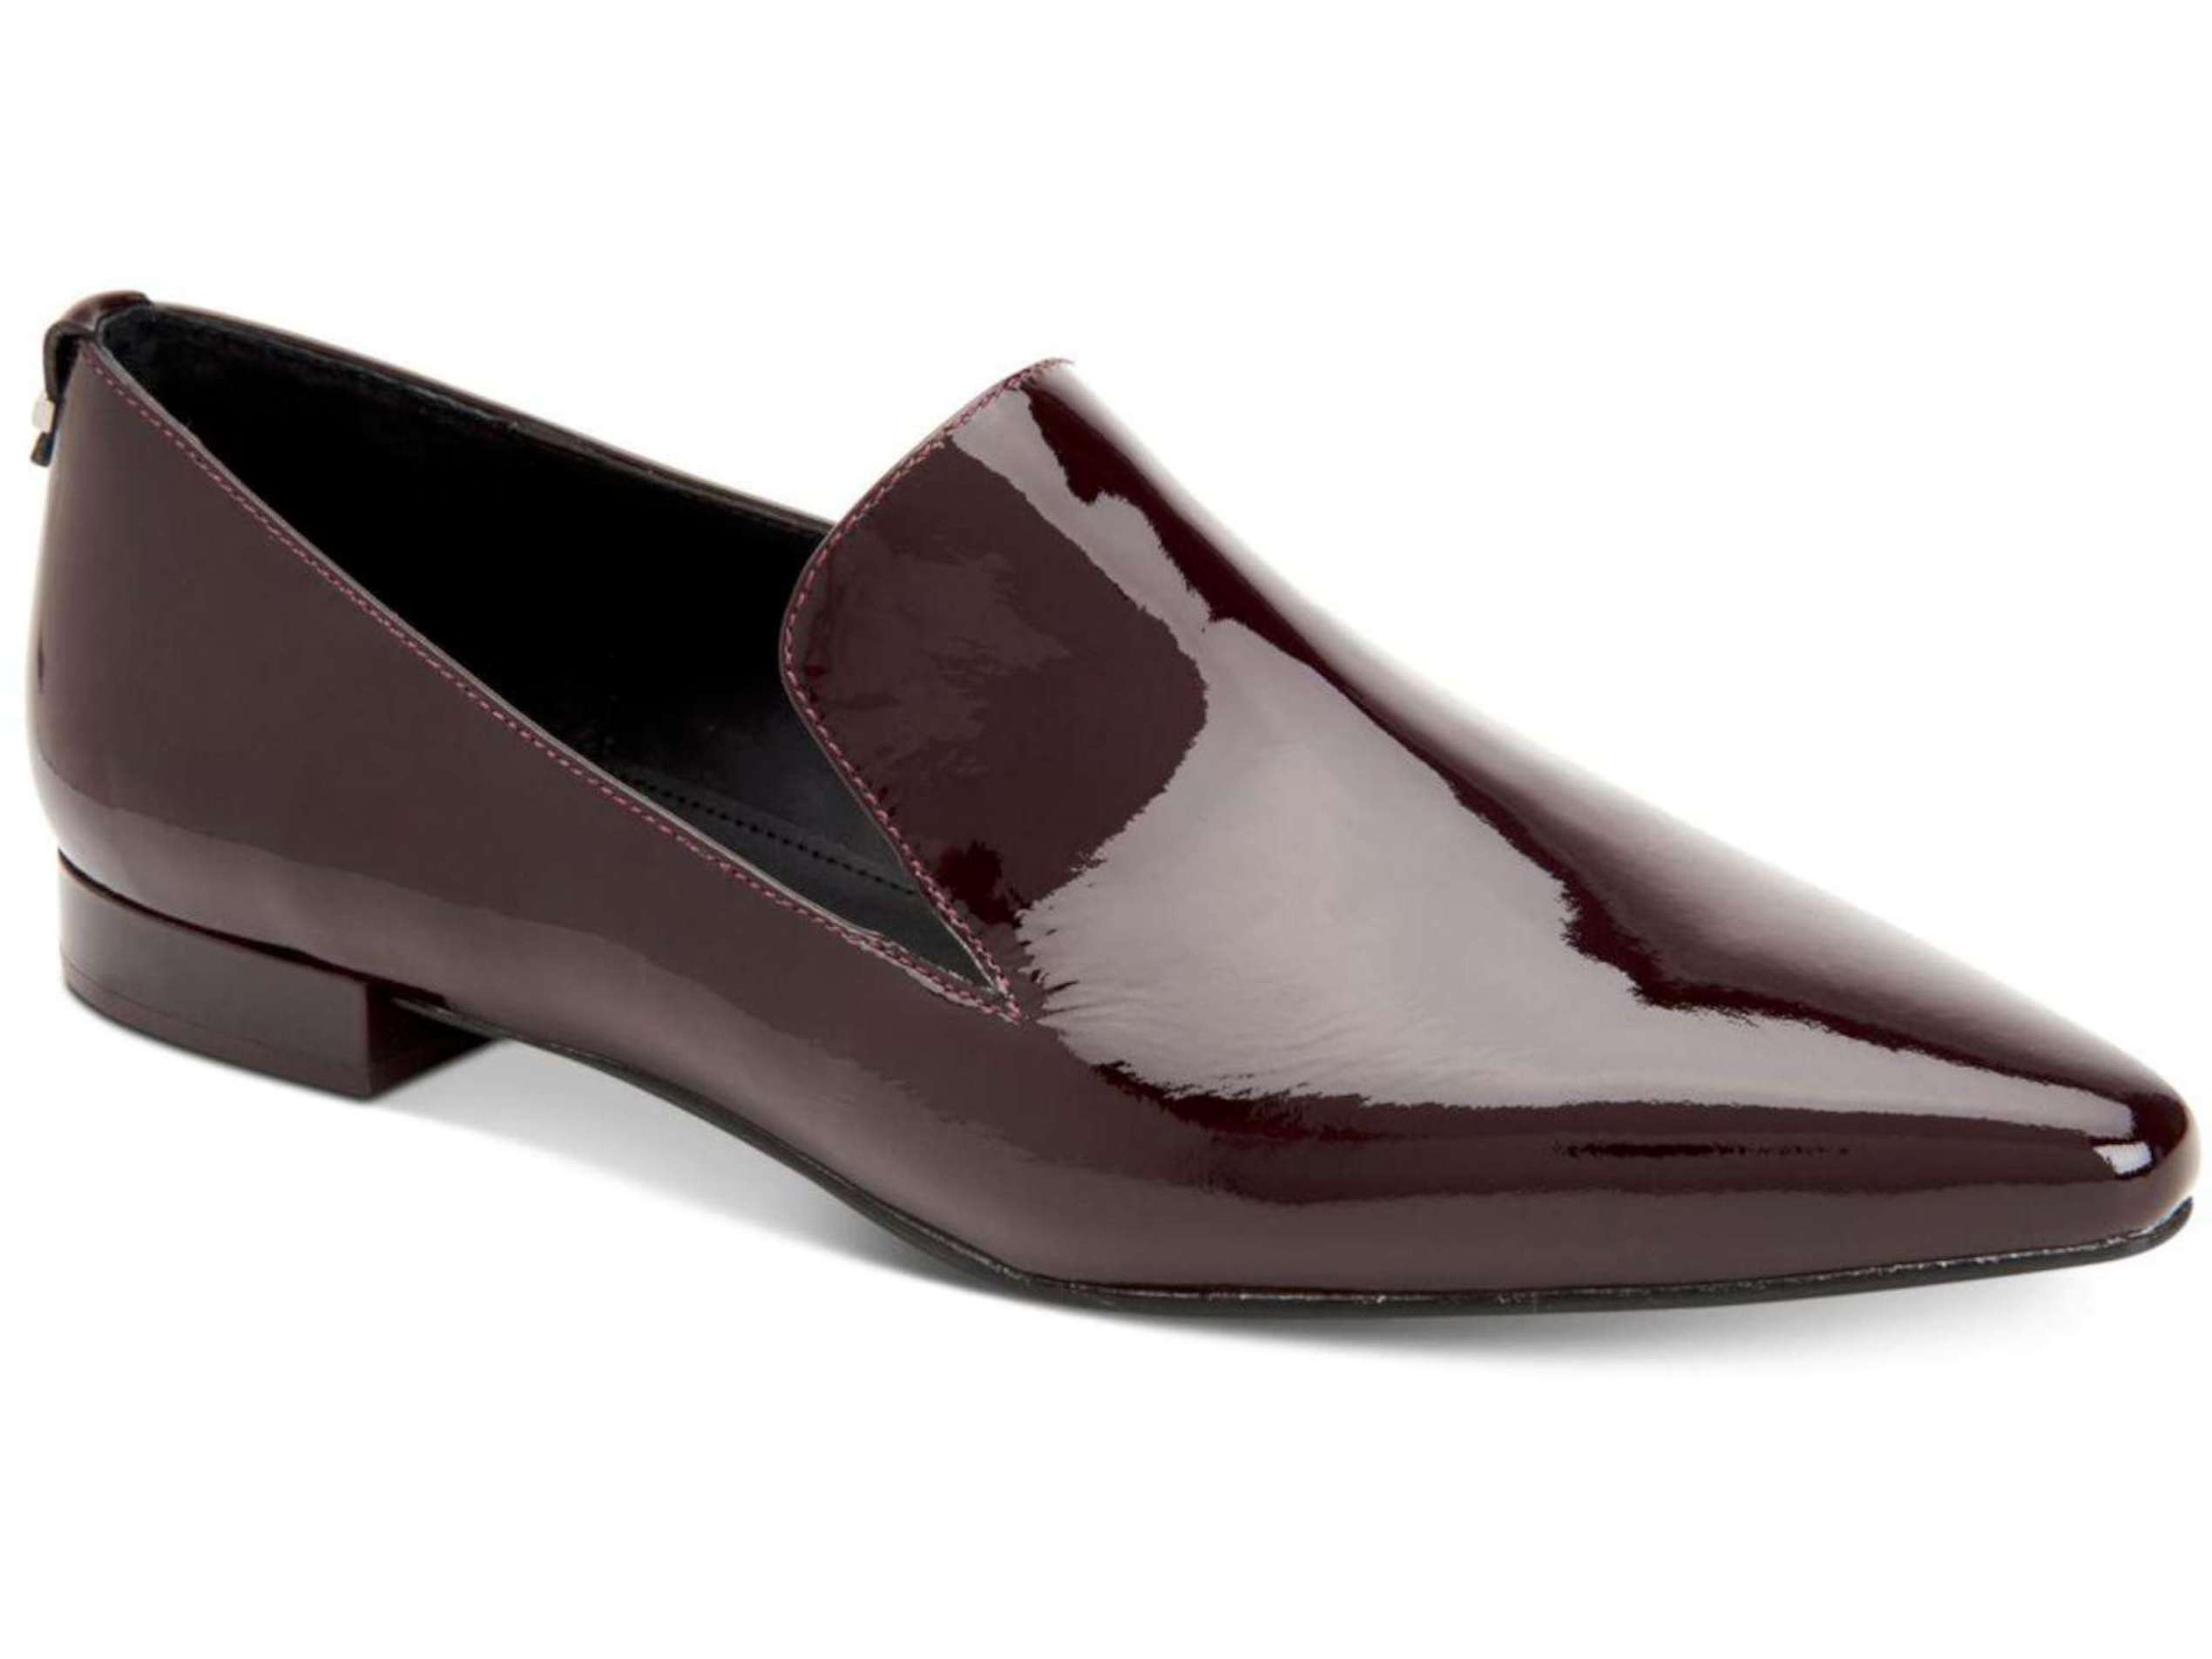 cbfe7a5f020 Calvin Klein Womens Elin Patent Closed Toe Loafers